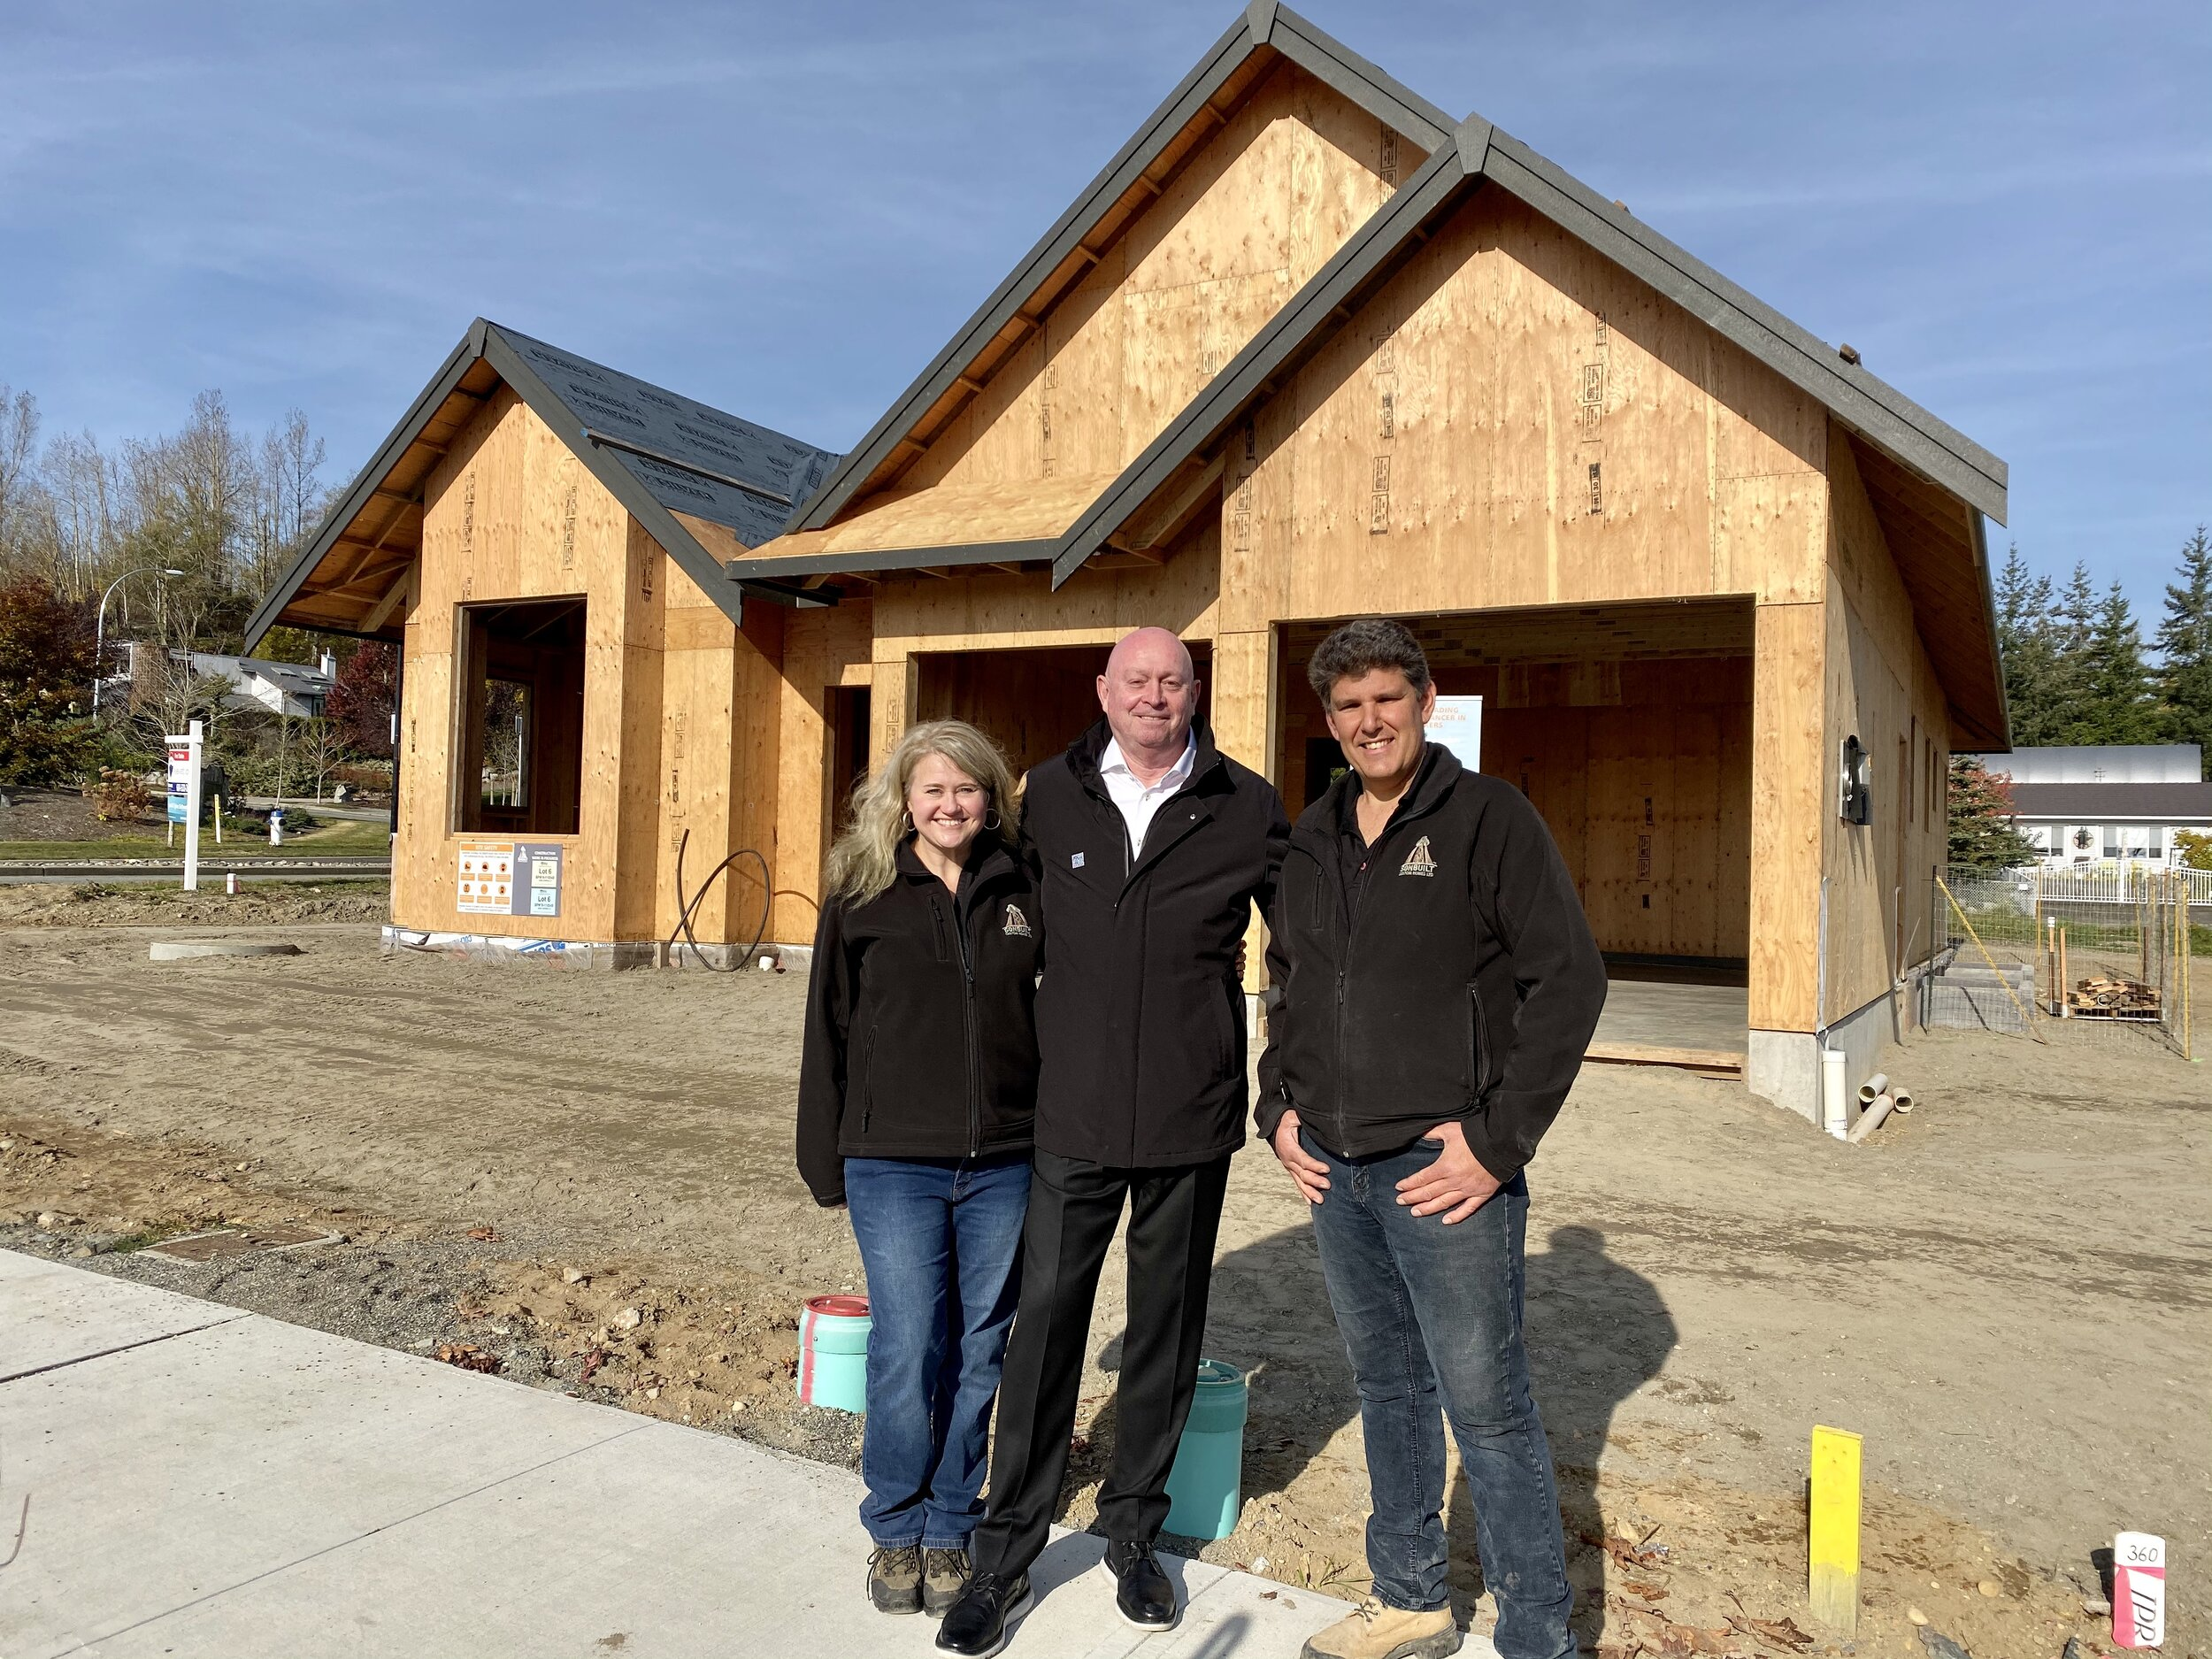 Alan Whitehead (REM & CARST) with Carmen and Johnathan Zerkee, President of Sonbuilt Custom Homes.